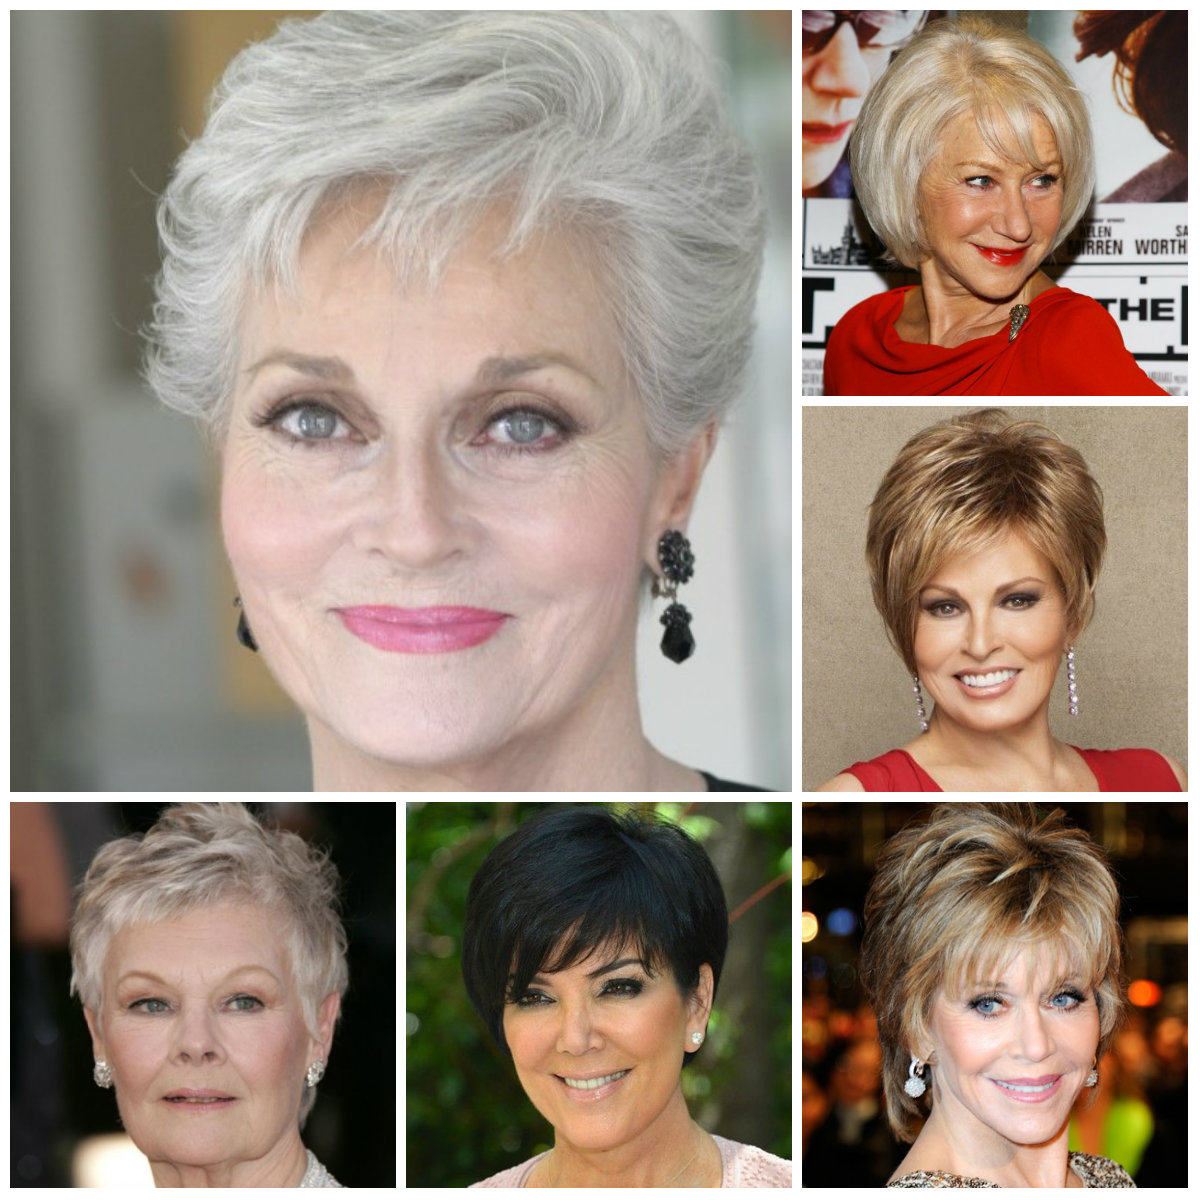 Hairstyles for Mature Women | 2017 Haircuts, Hairstyles and Hair ...